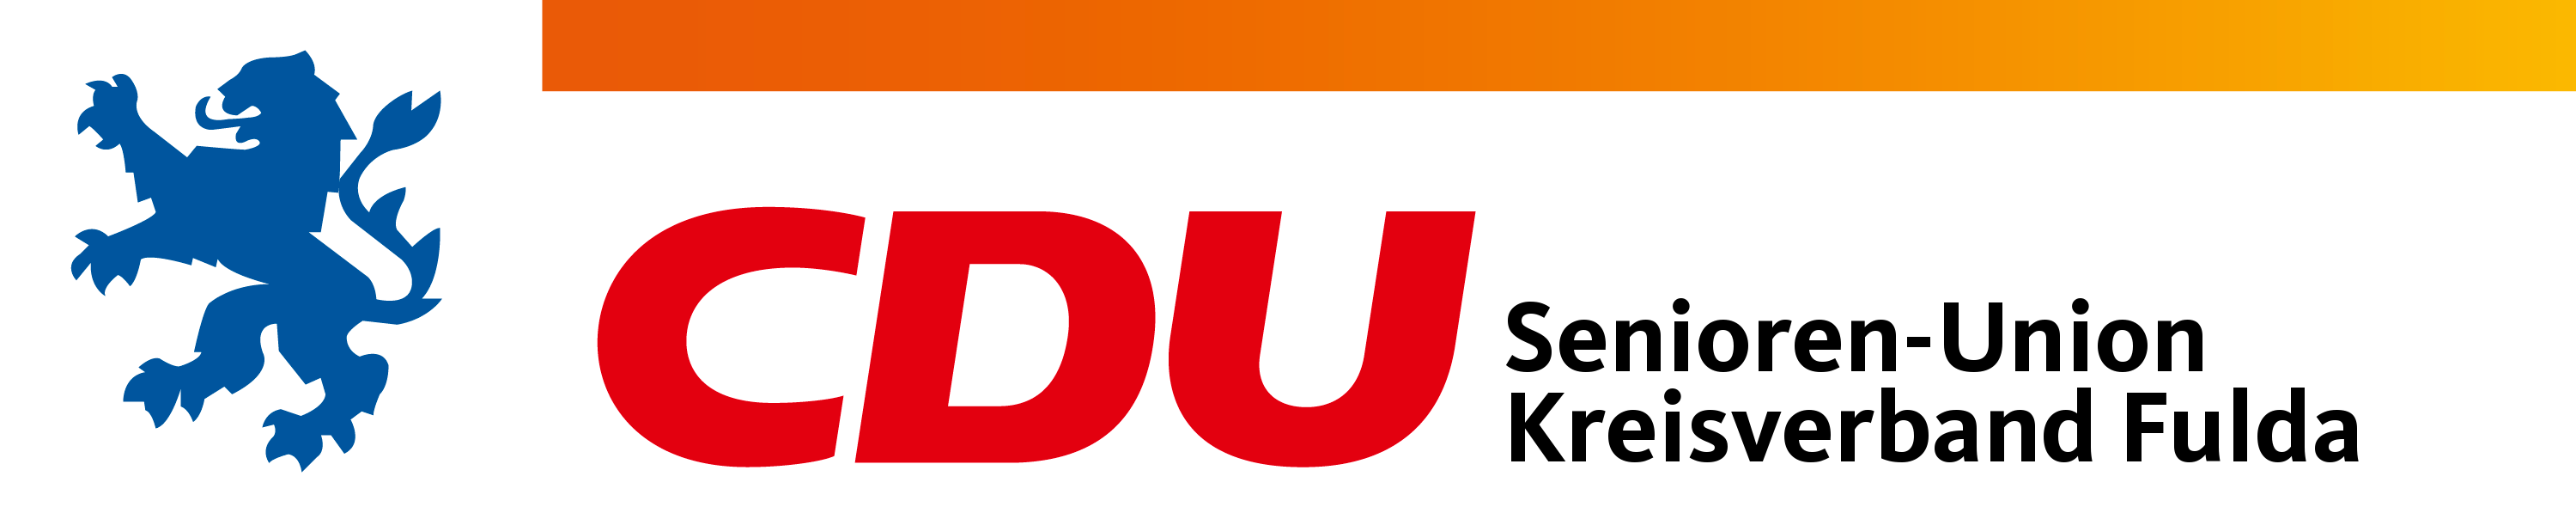 Senioren-Union Kreisverband Fulda